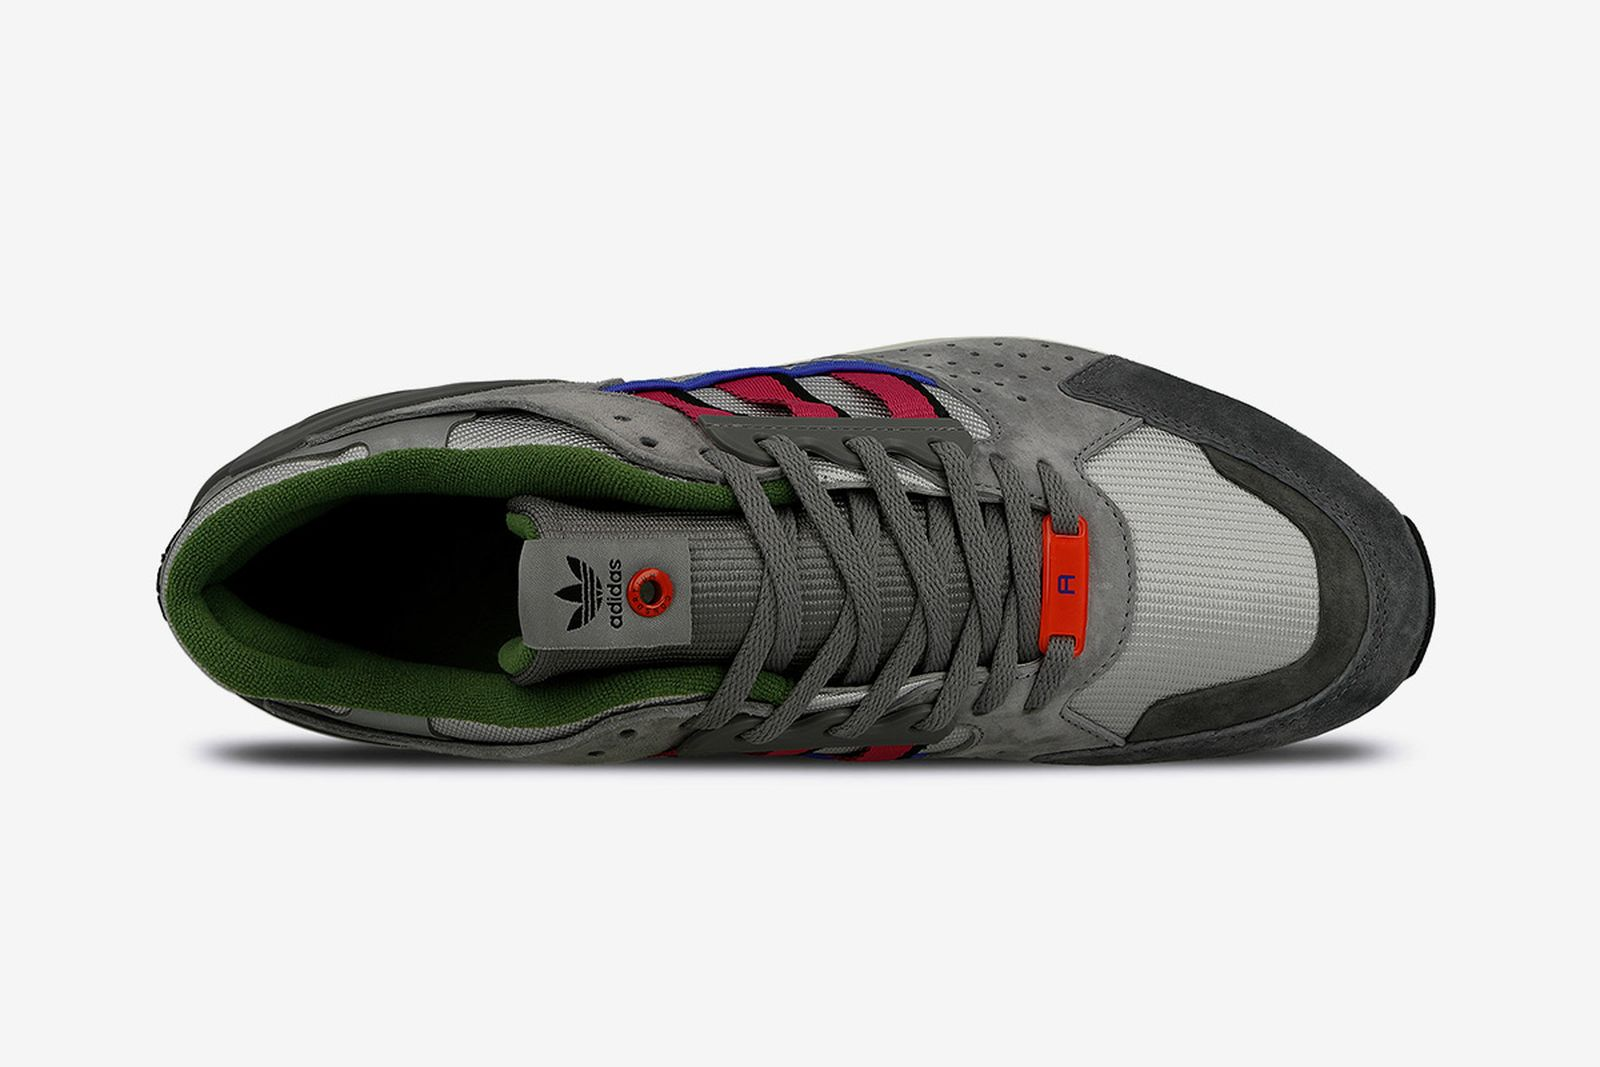 overkill adidas consortium zx 10 000 c game overkill release date price product